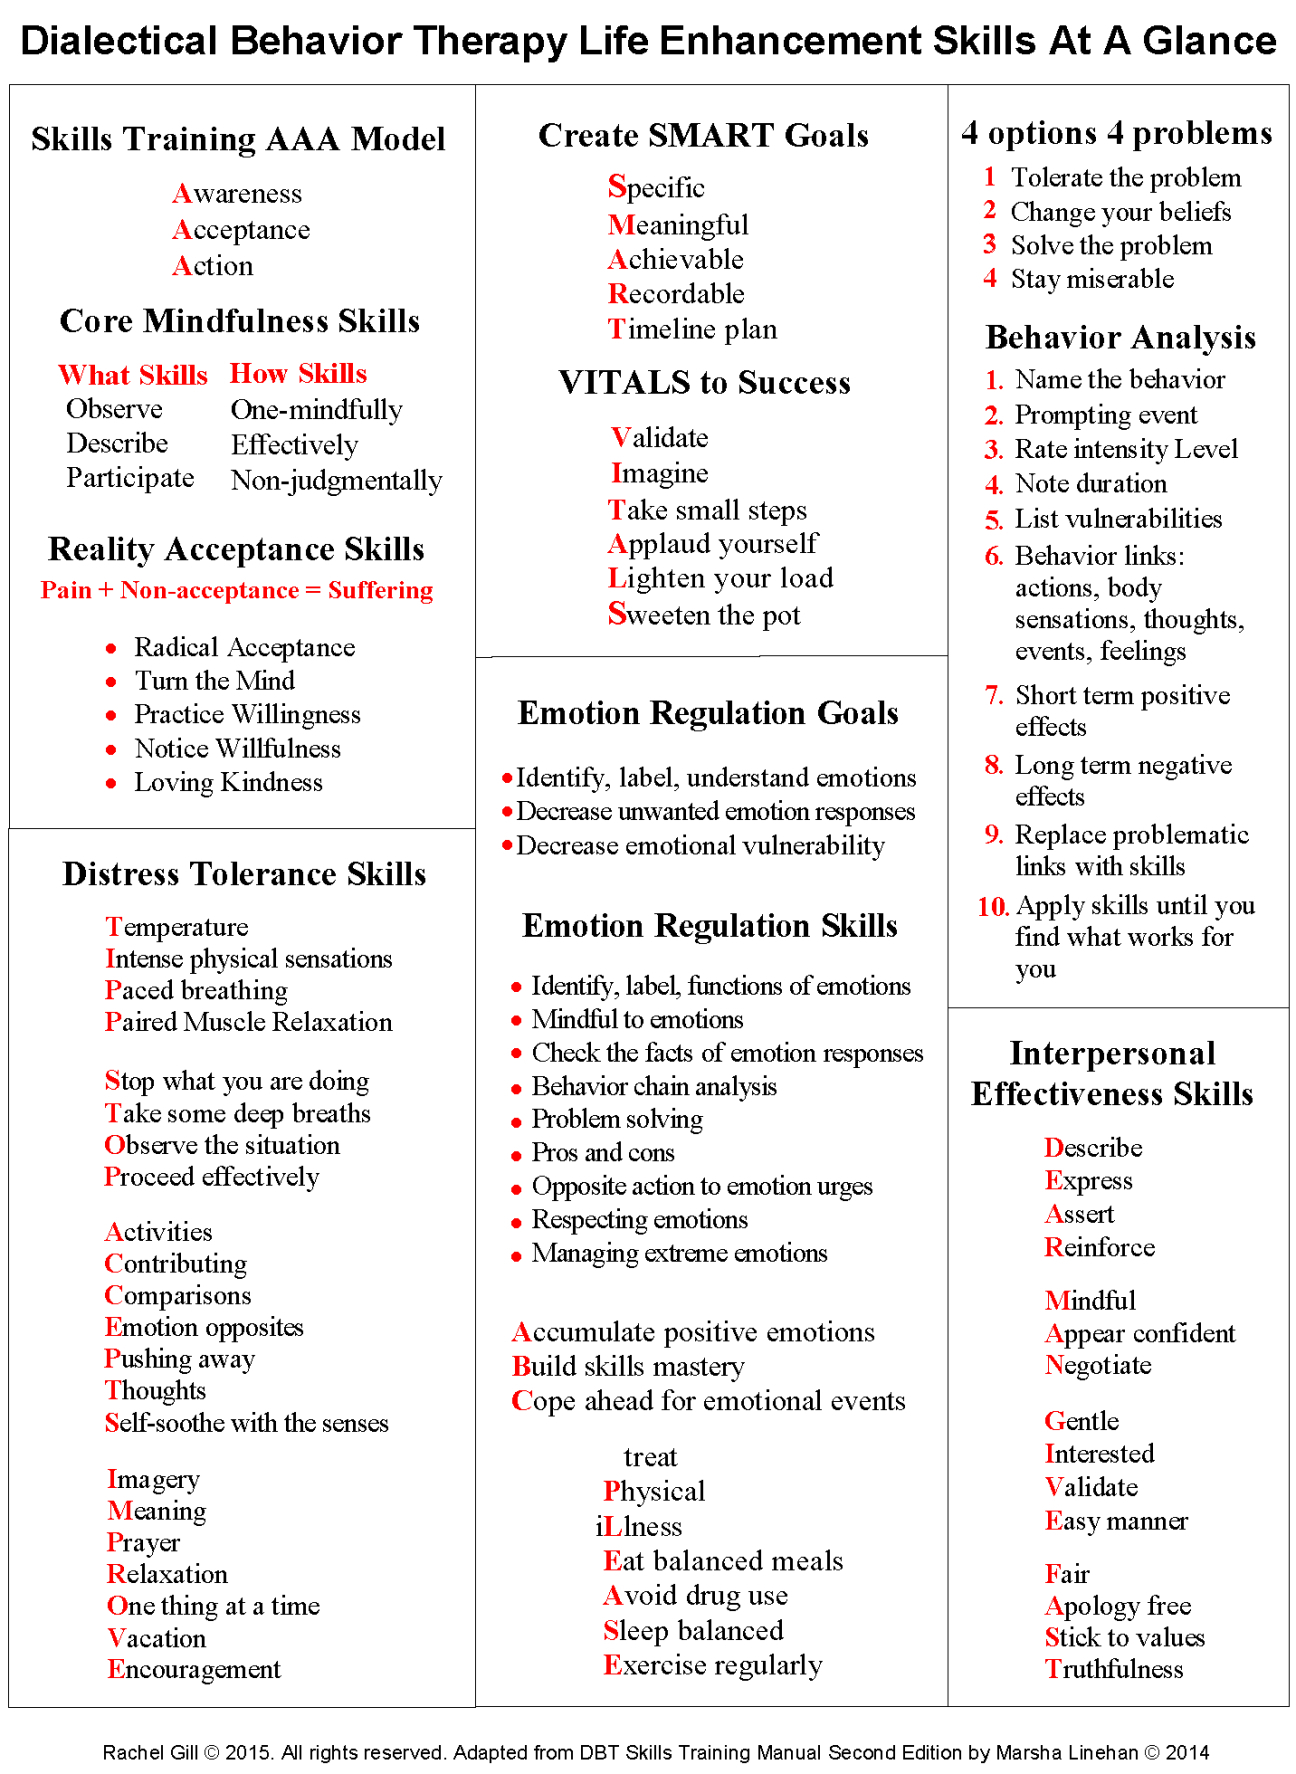 Dbt Handouts & Worksheets | Dbt Peer Connections | Self Study - Free | Free Printable Coping Skills Worksheets